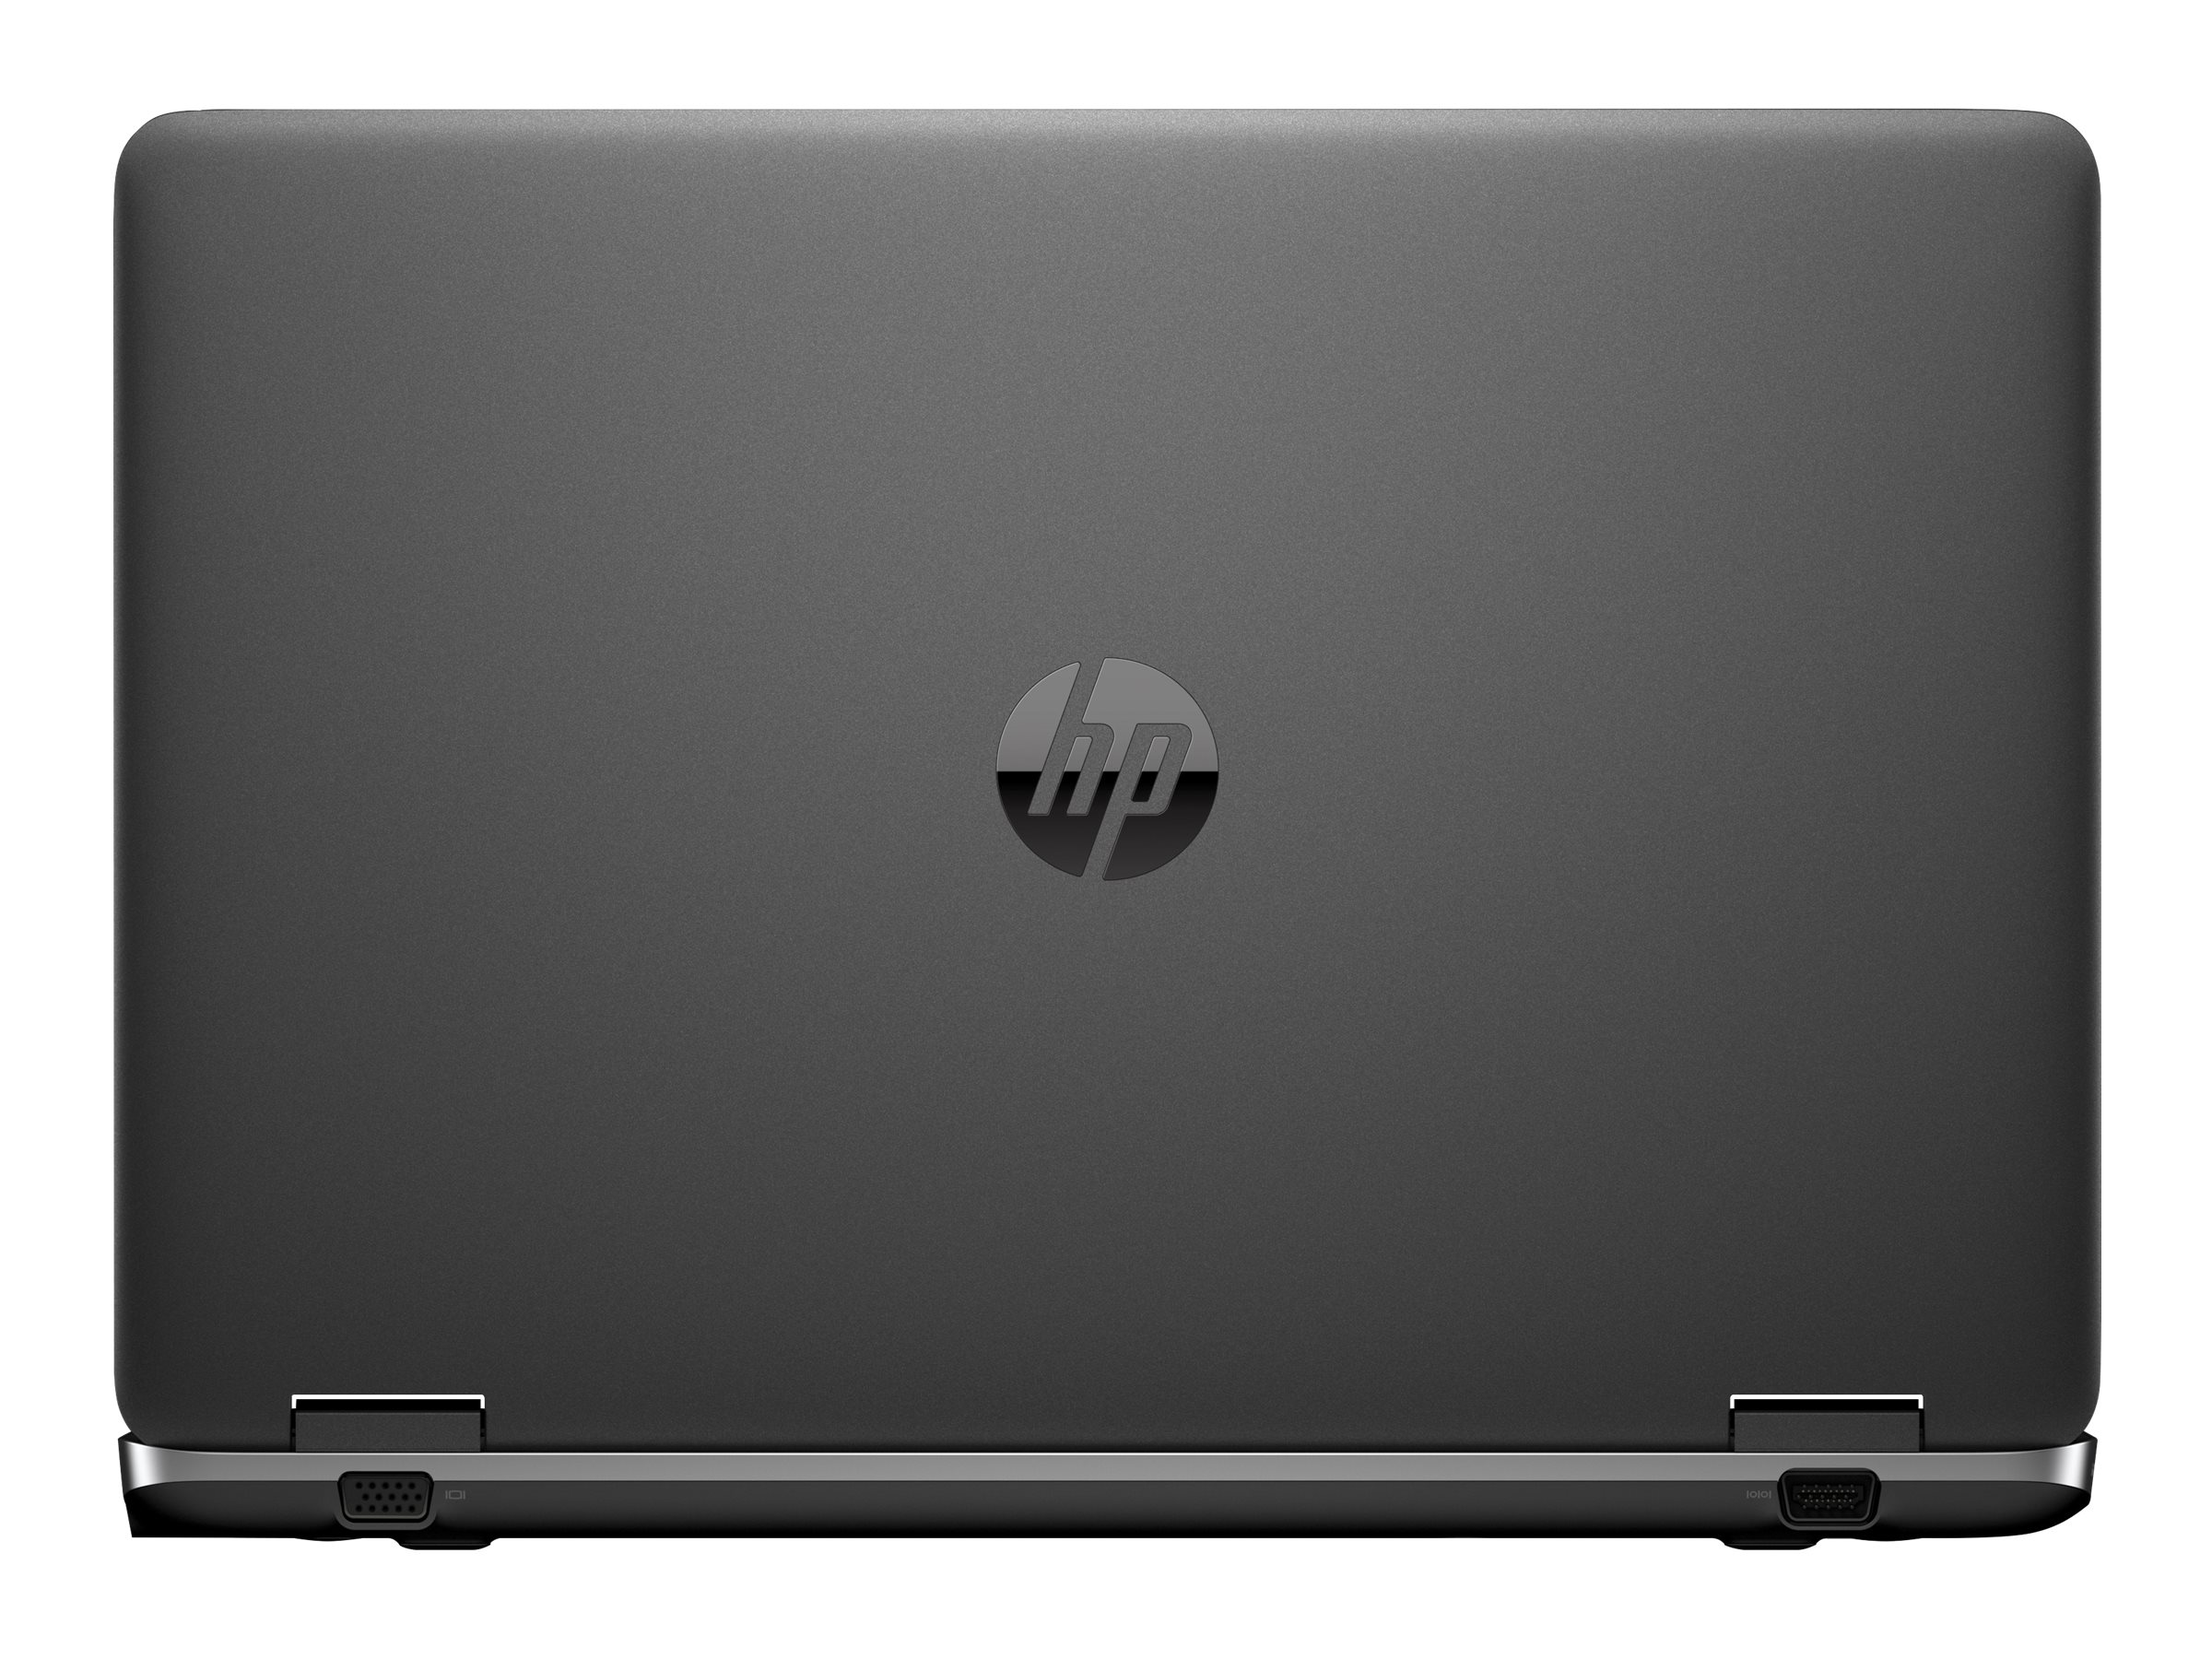 HP ProBook 650 G2 2.3GHz Core i5 15.6in display, V1P78UA#ABA